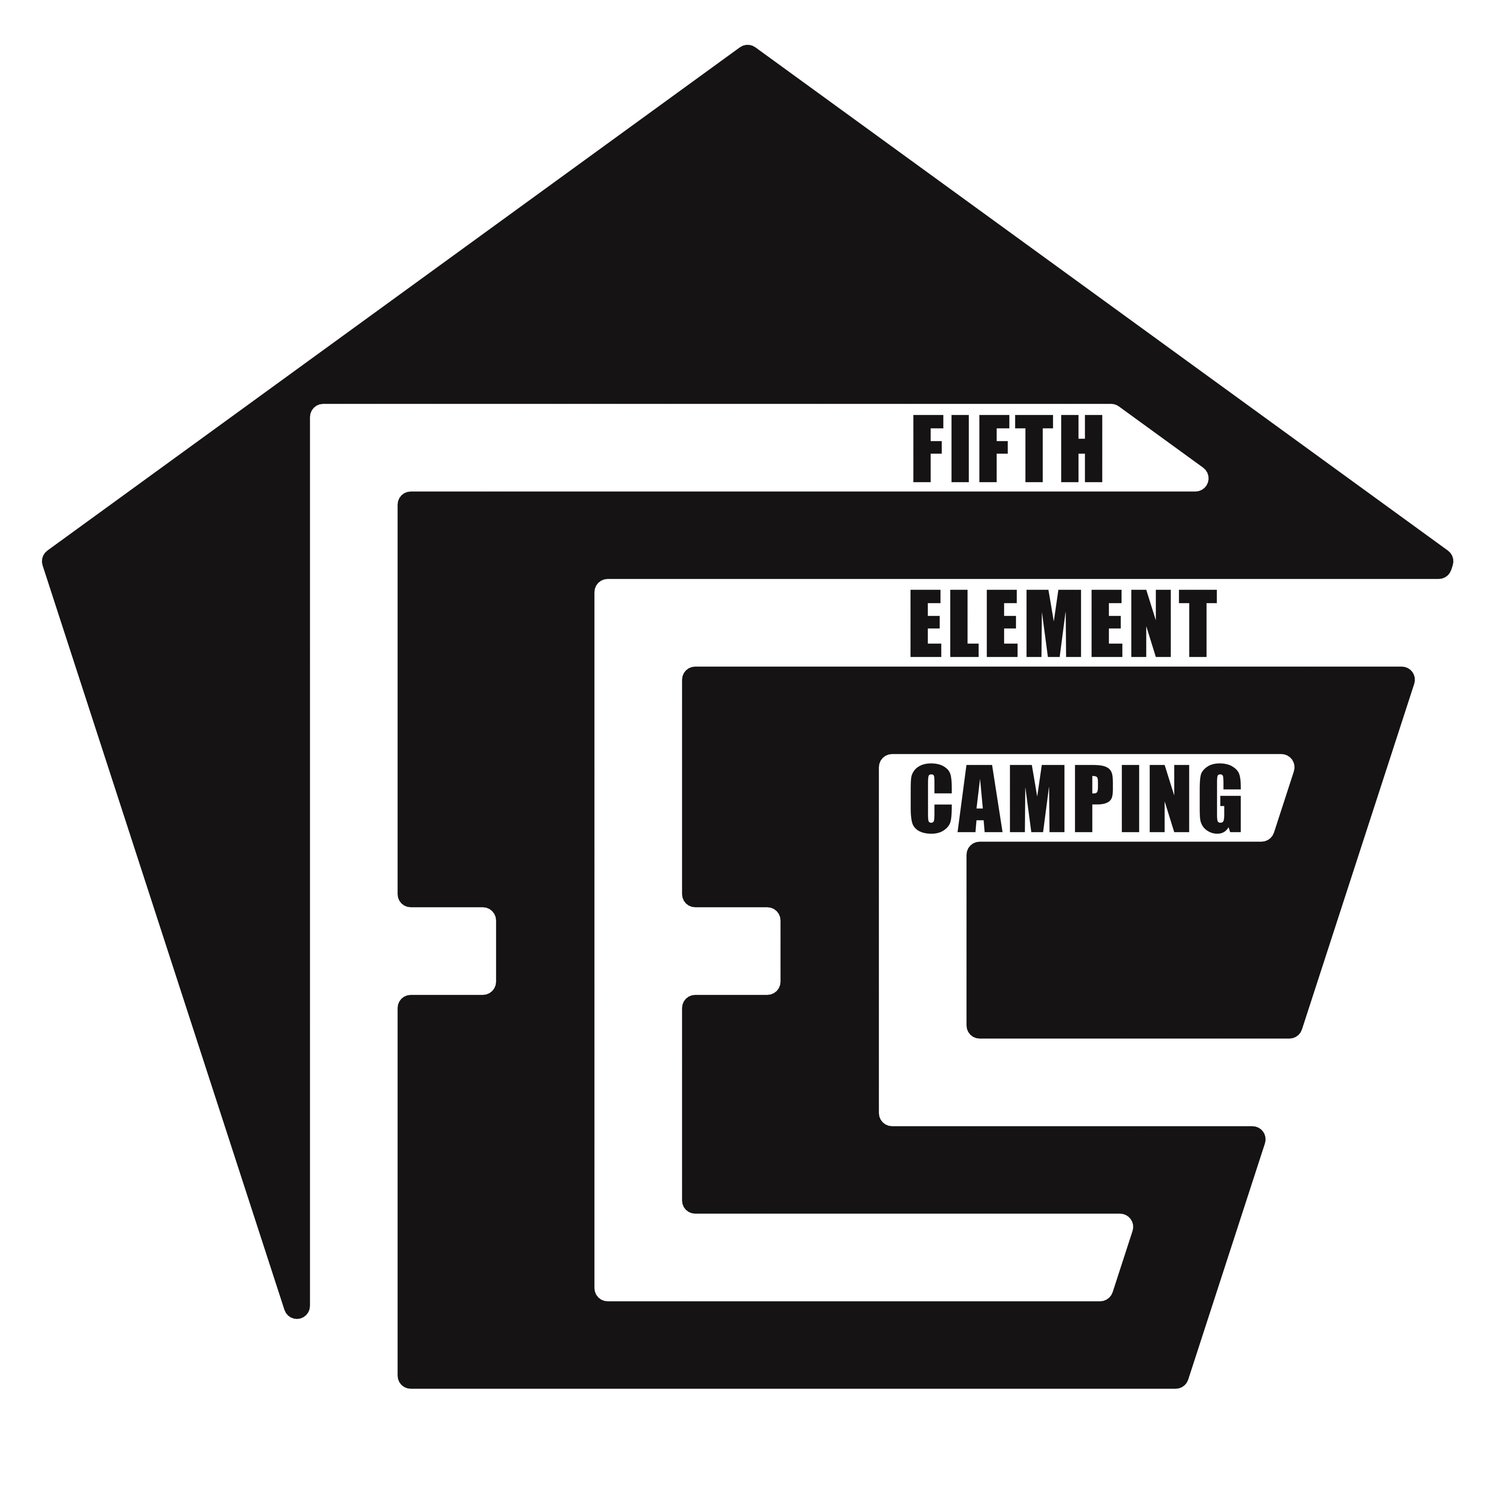 Fifth Element Camping Gear